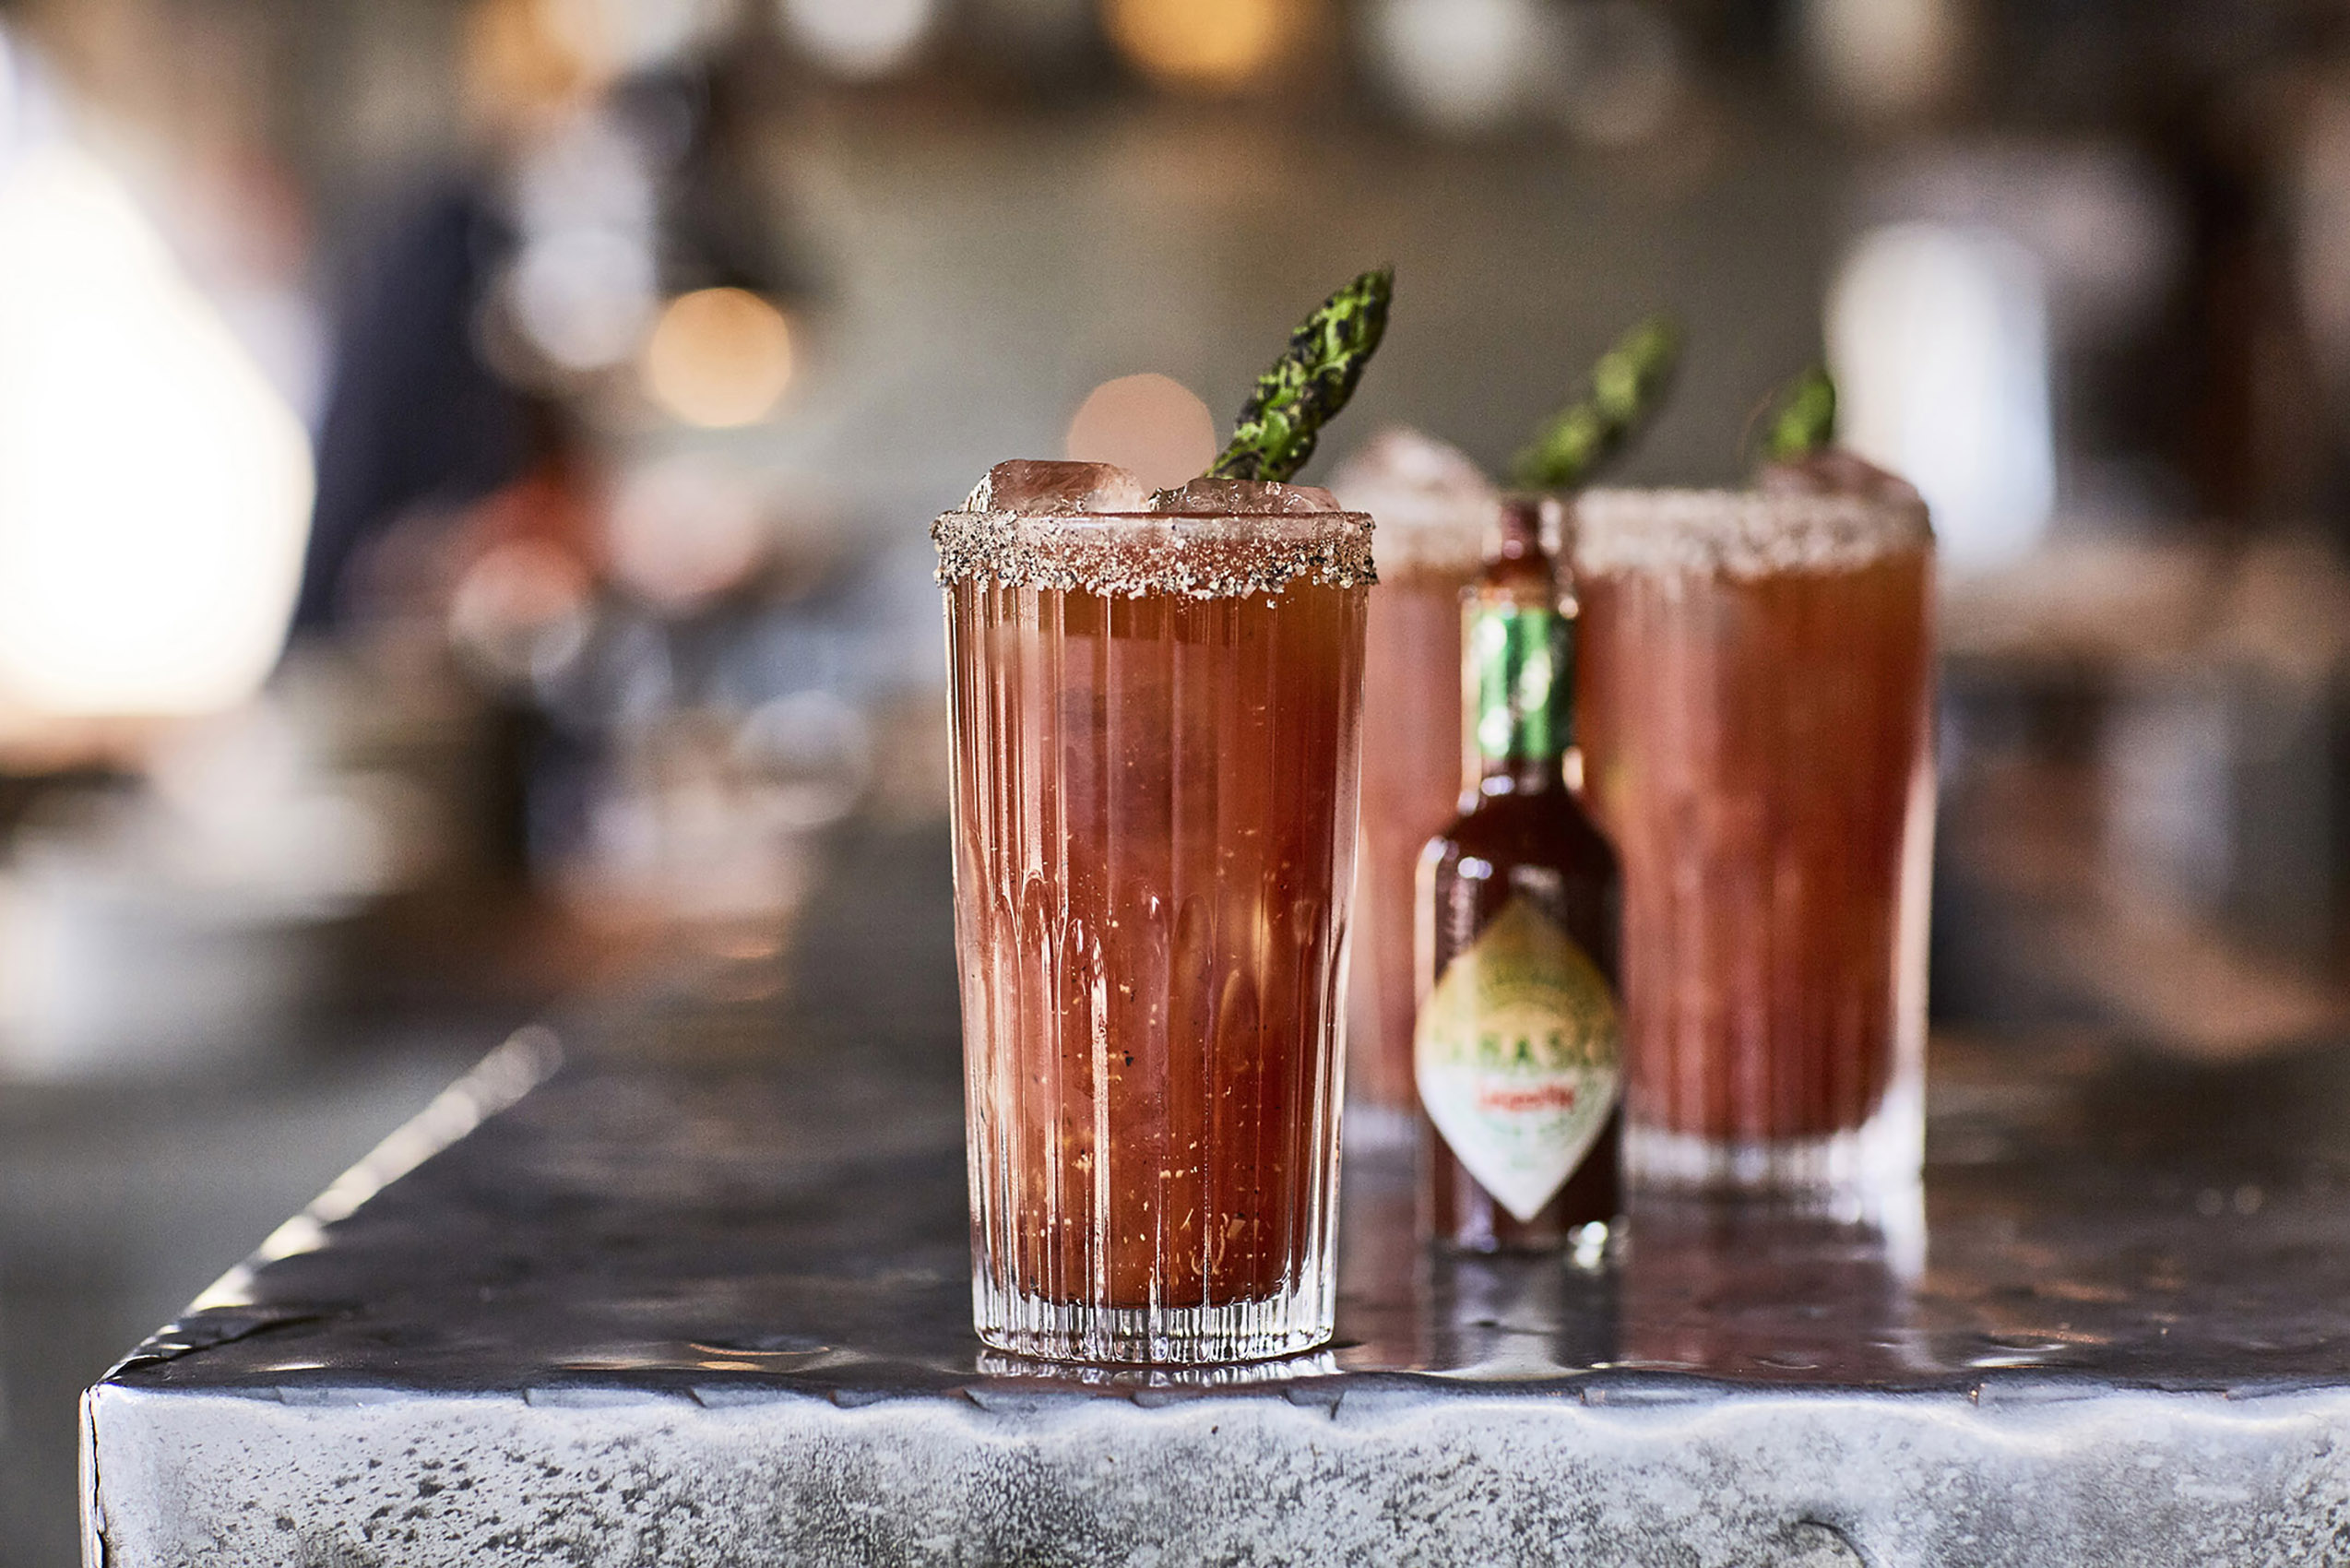 SteveRyan_Photographer_Drink_Cocktails_Tabasco_BloodyMary_28